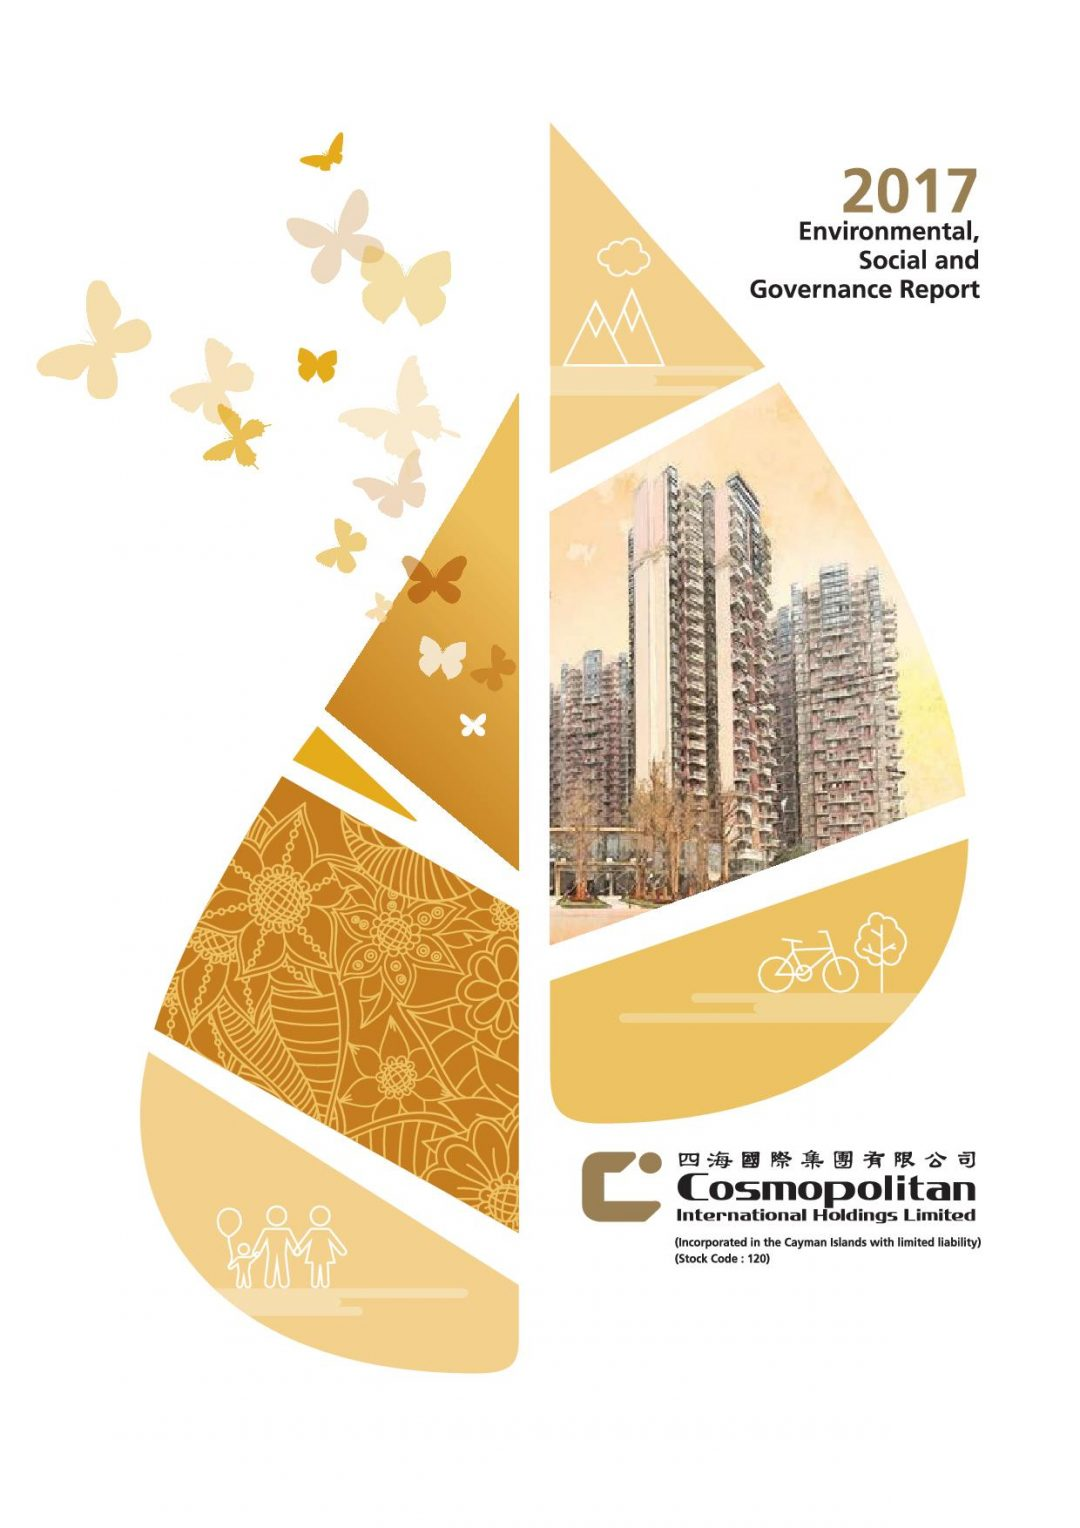 Cosmopolitian International Holdings Limited